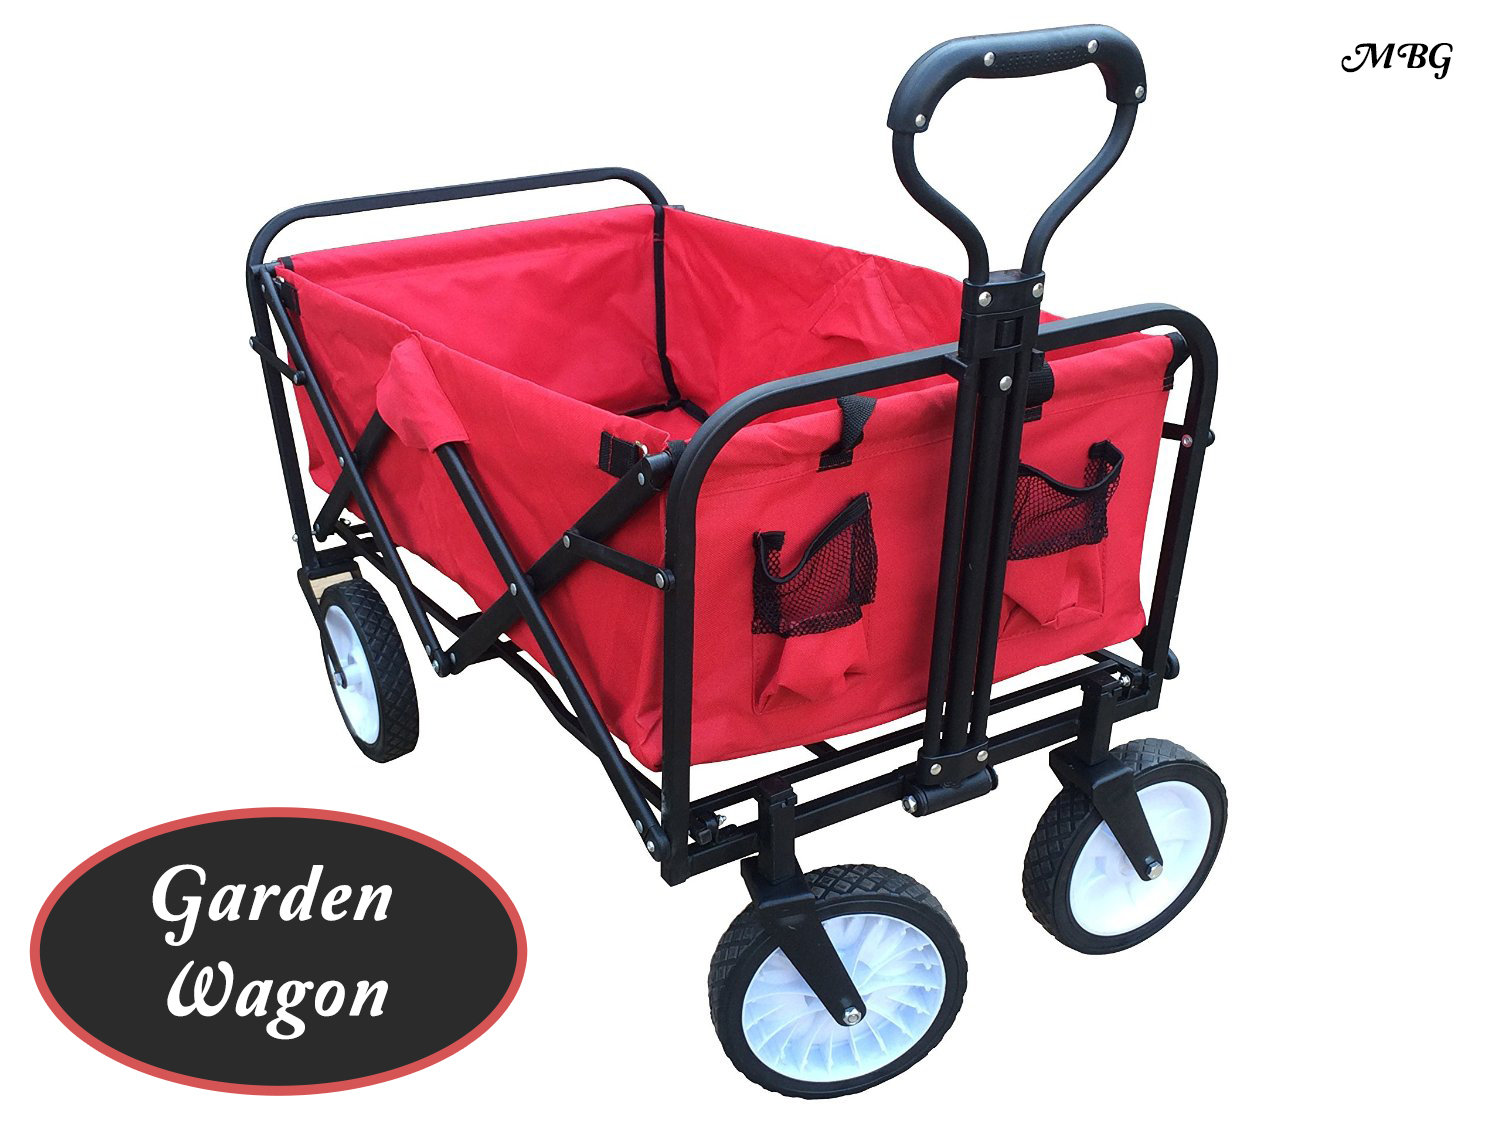 Collapsible Garden Wagon with No Assemply Required is a gardeners dream for plant sales and hauling precious plants around the garden.